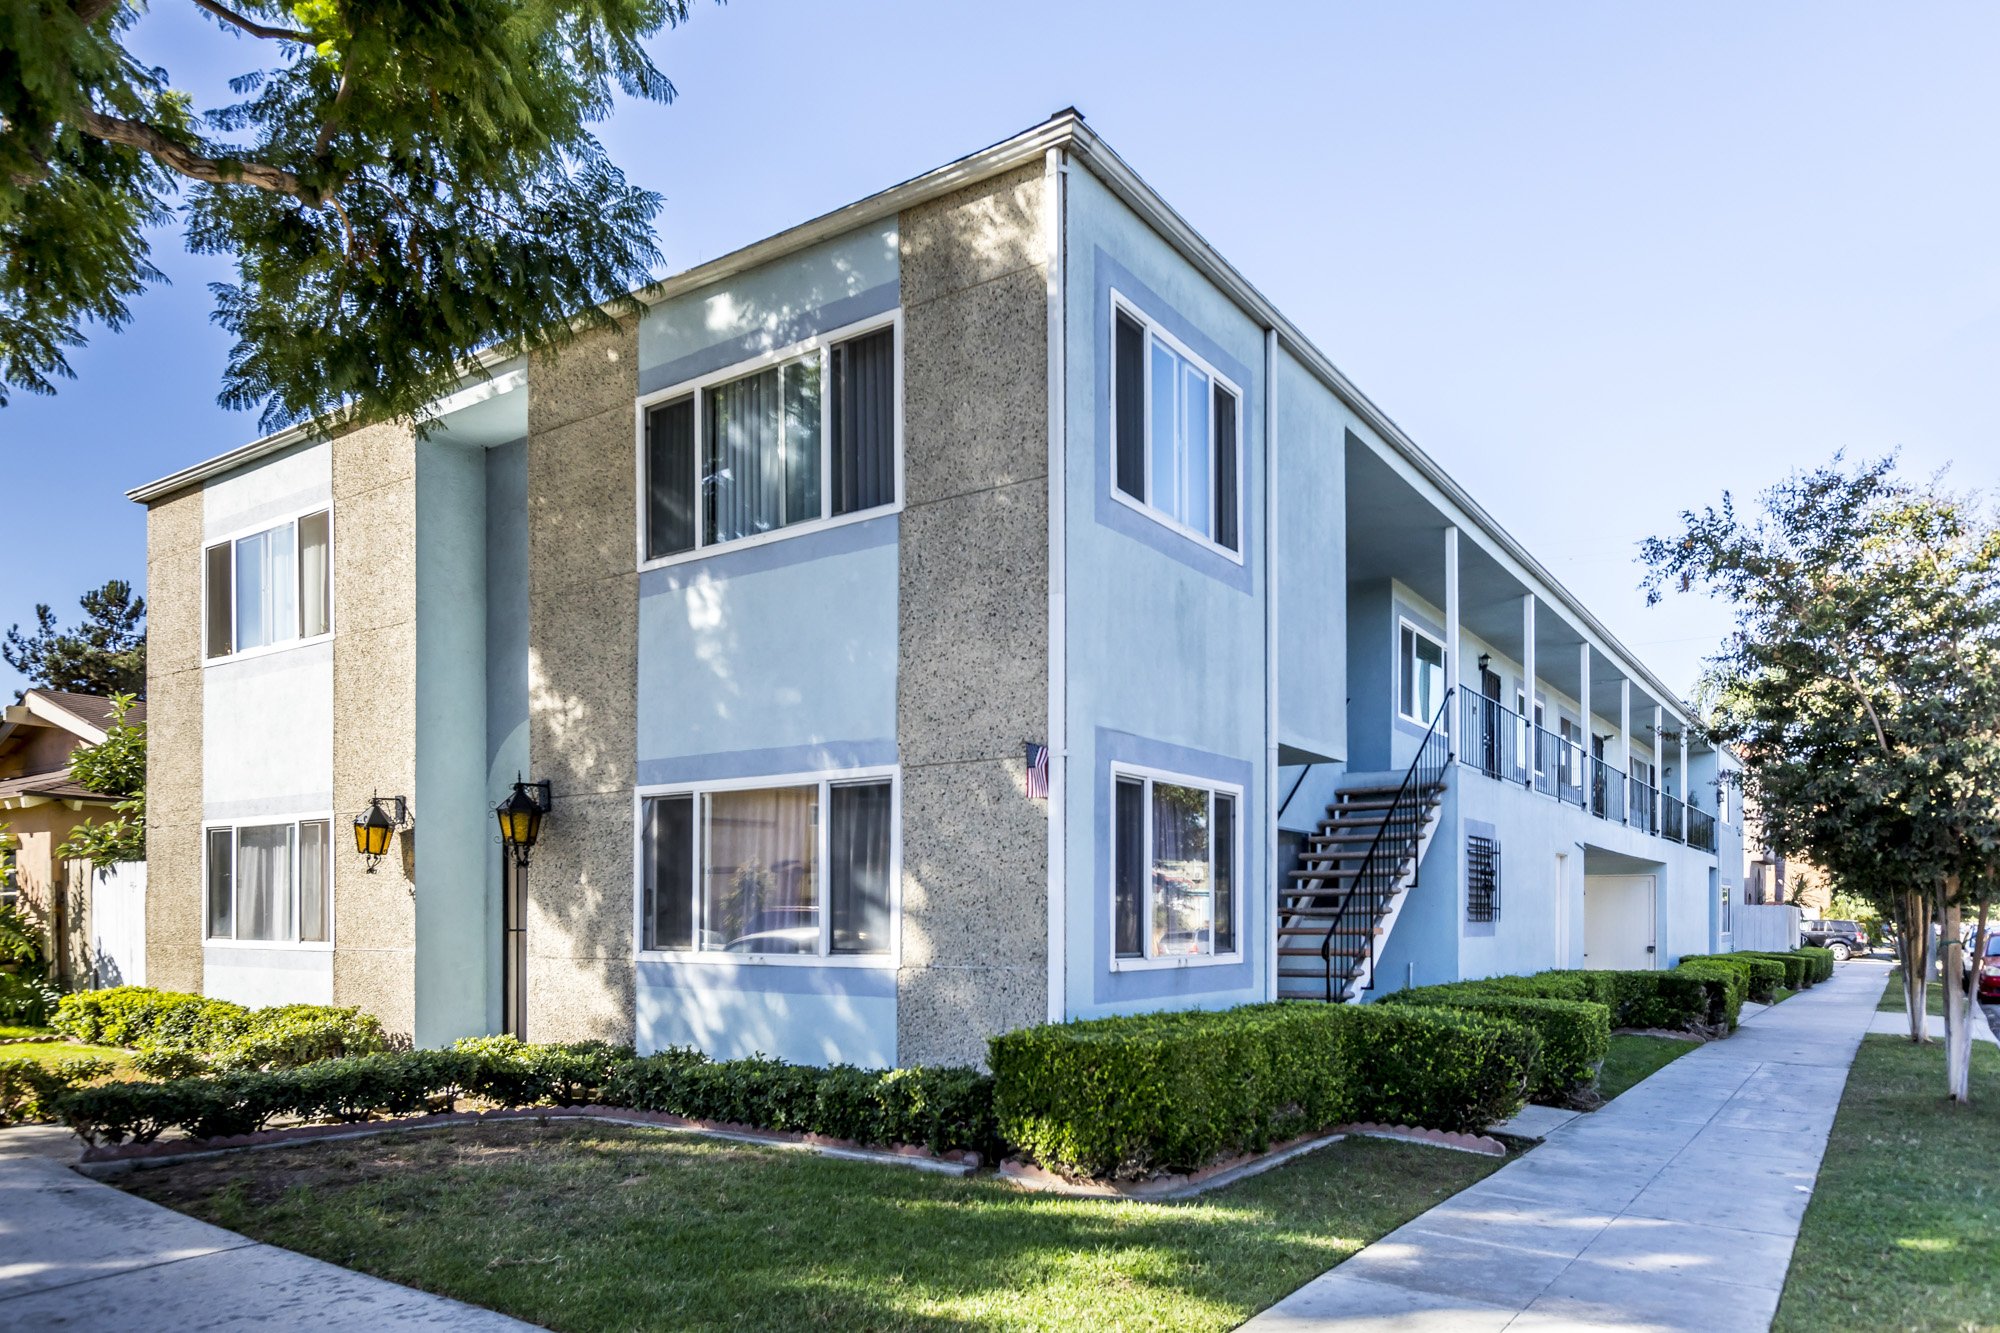 539 Coronado Avenue, Long Beach, CA 90814